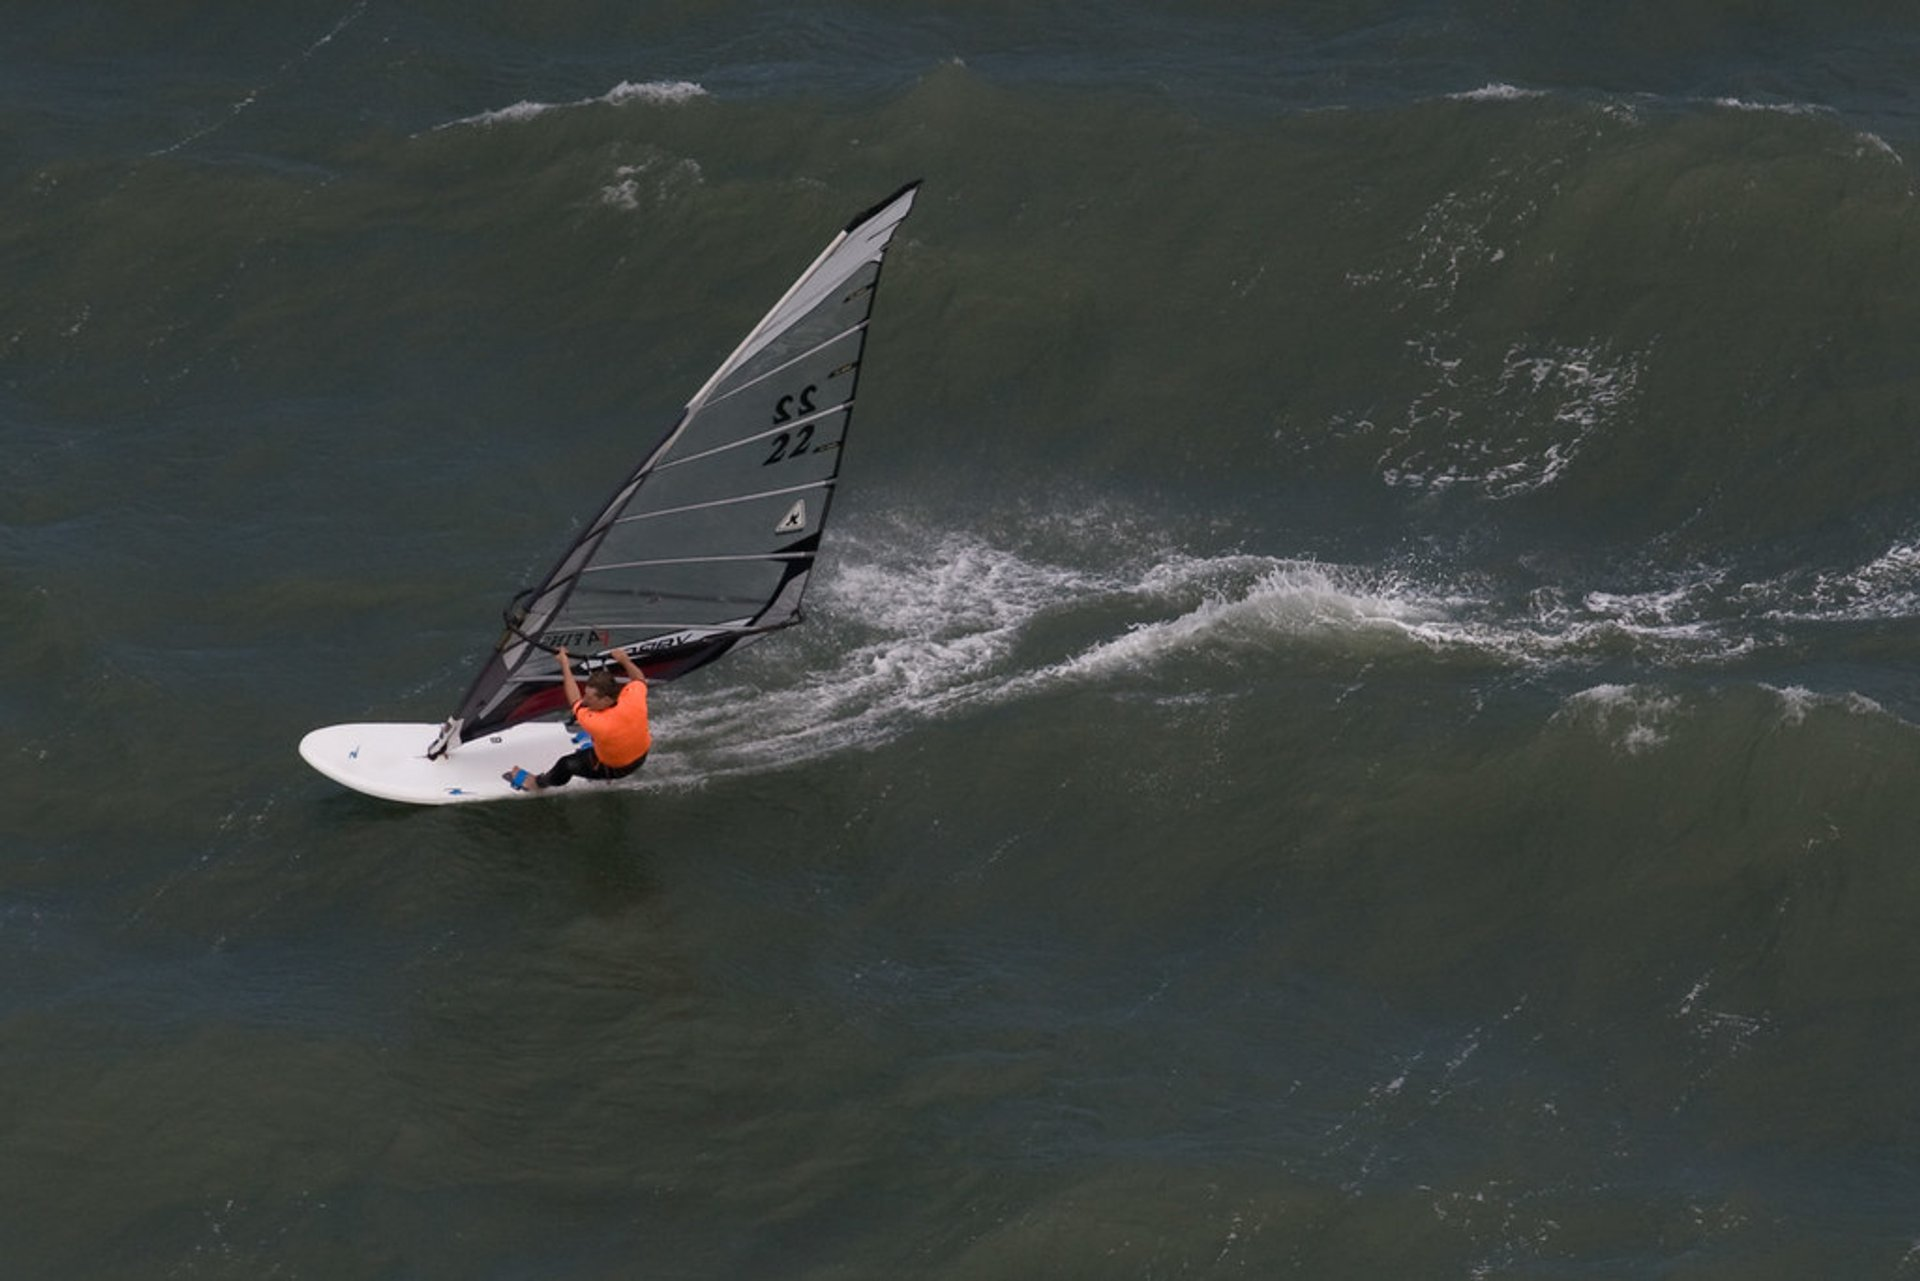 Windsurfing competitor on San Francisco Bay, viewed from the Golden Gate Bridge 2020